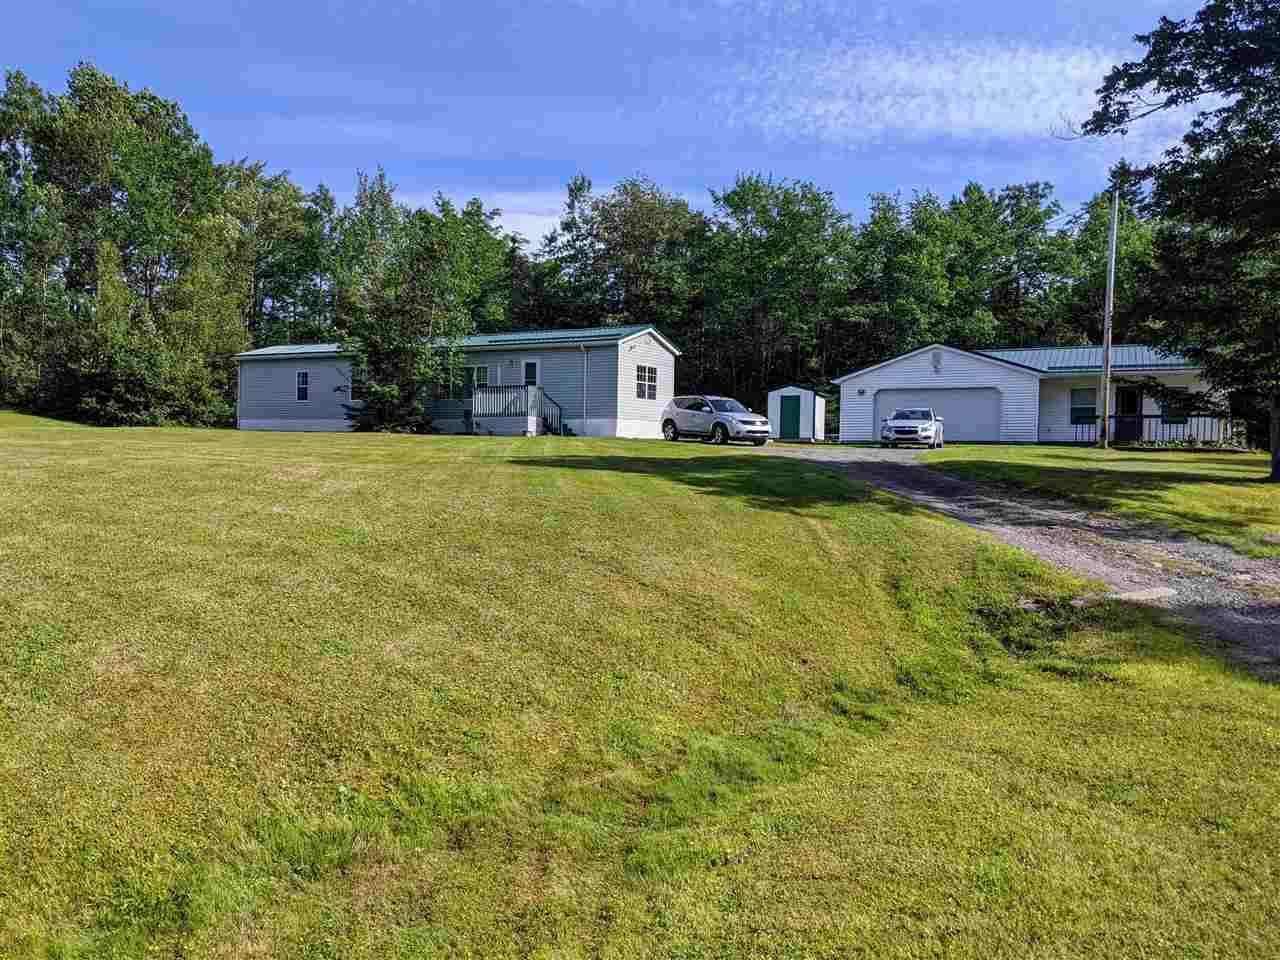 Main Photo: 3240 Indian Road in Mill Village: 105-East Hants/Colchester West Residential for sale (Halifax-Dartmouth)  : MLS®# 202013730